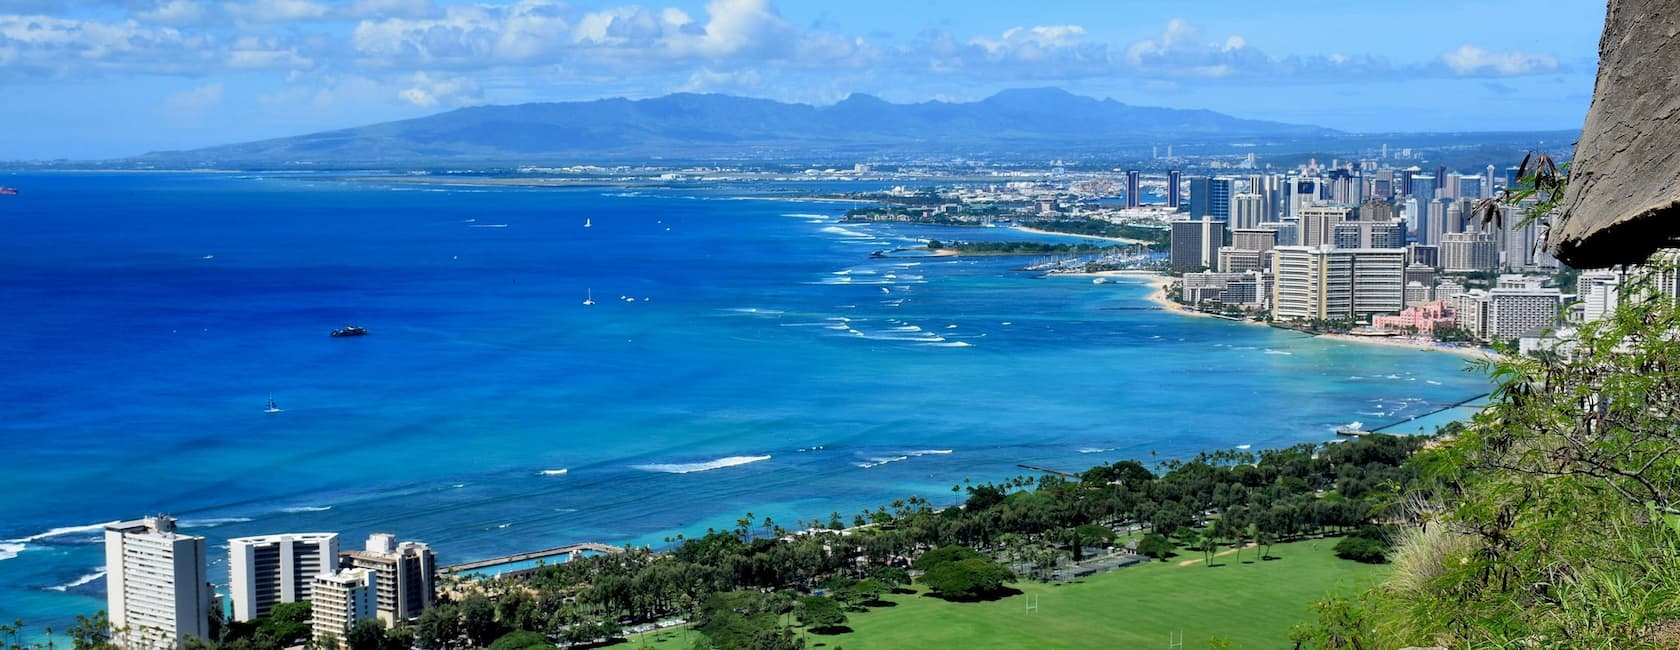 Vacation rentals in Waikiki Beach